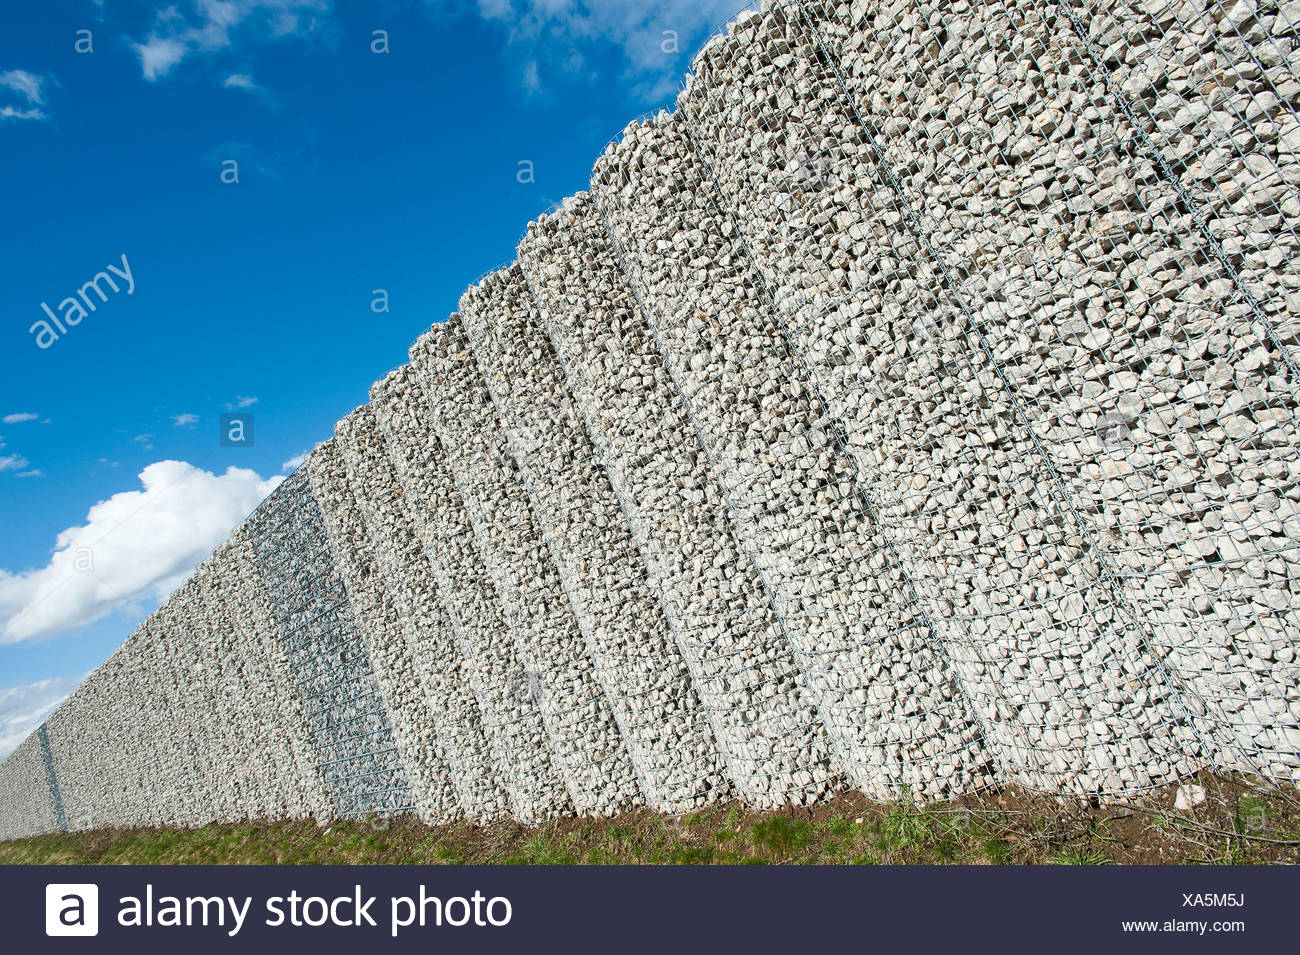 mur de gabions corbeilles filet rempli de pierres mur de protection contre le bruit sur l. Black Bedroom Furniture Sets. Home Design Ideas